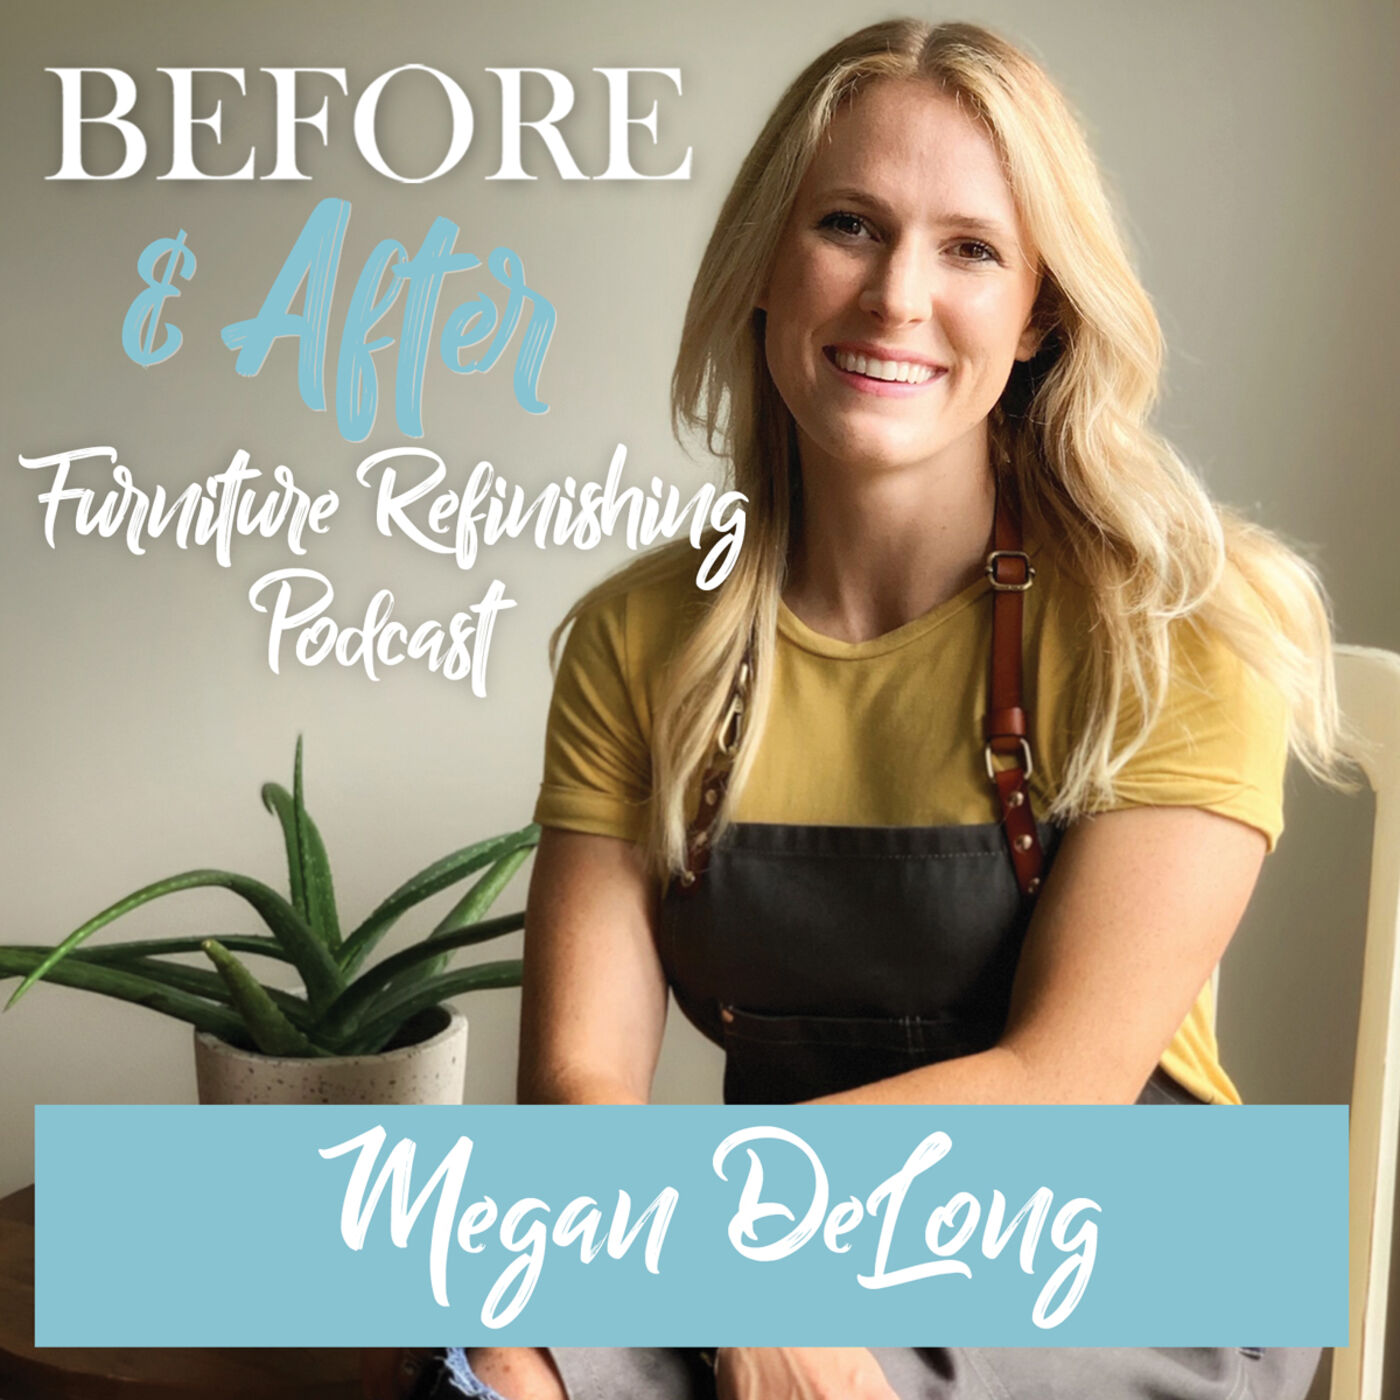 How to be a successful furniture refinisher in under two years: An interview with Megan DeLong of Meg Del Designs